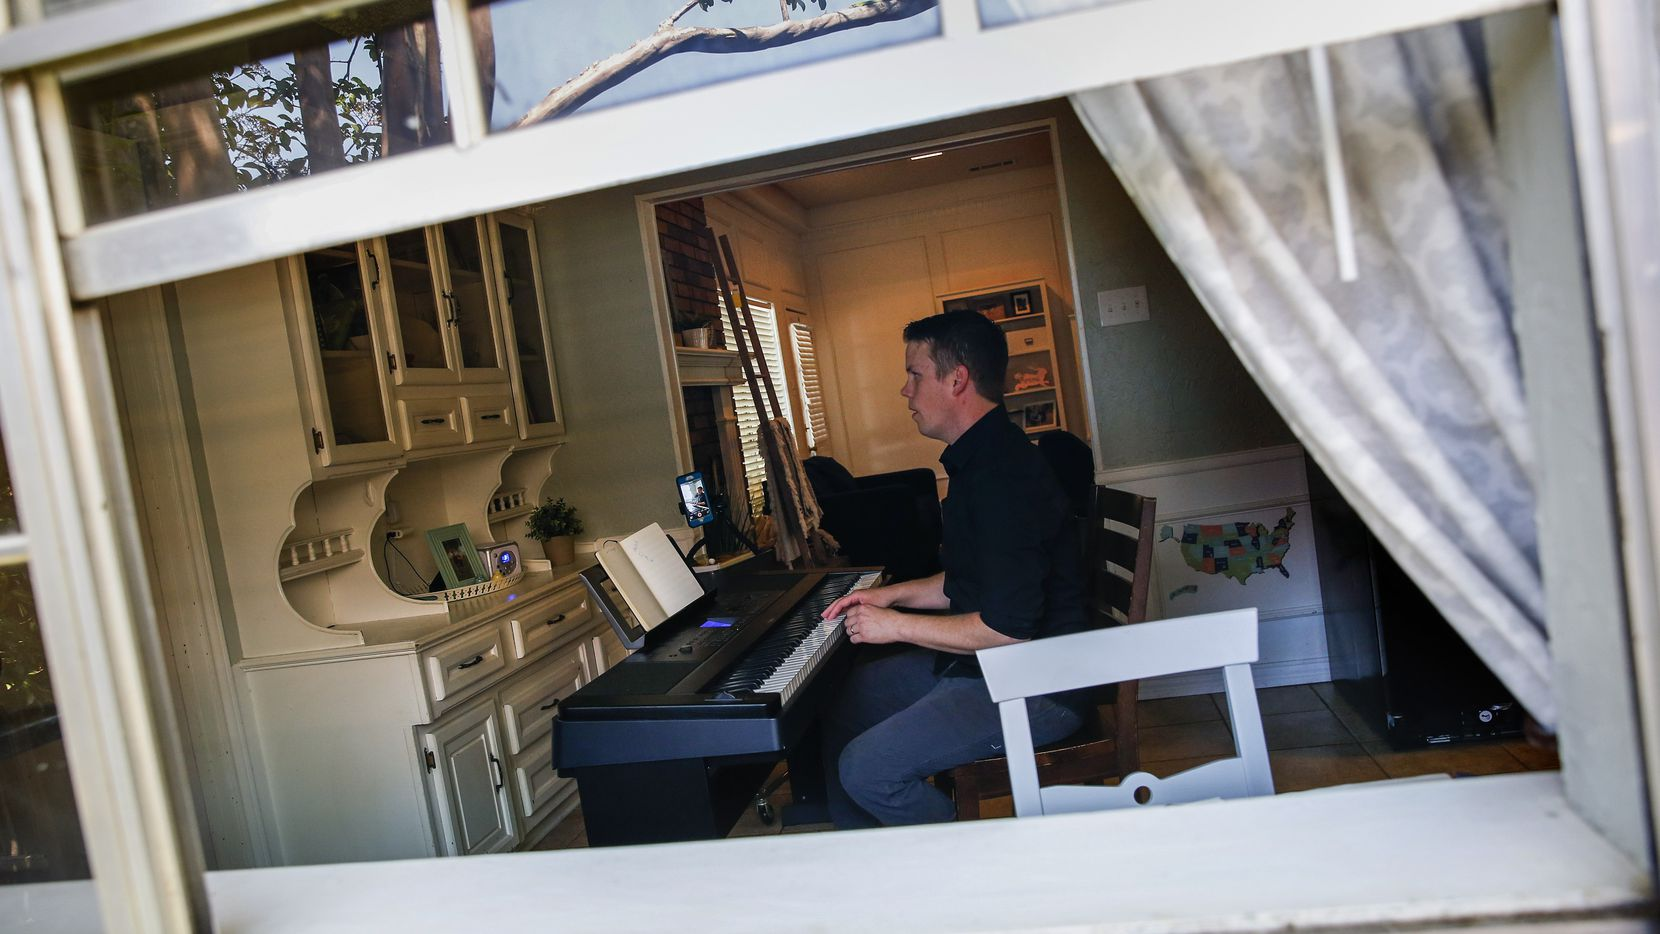 Brad Hanson, who has been playing the piano at NorthPark Mall for 11 years, plays the piano Friday, April 10, 2020 at his home in Garland, Texas. Since the mall is temporarily closed due to the new coronavirus, Hanson has been playing concerts live on Facebook to bring music into people's homes.